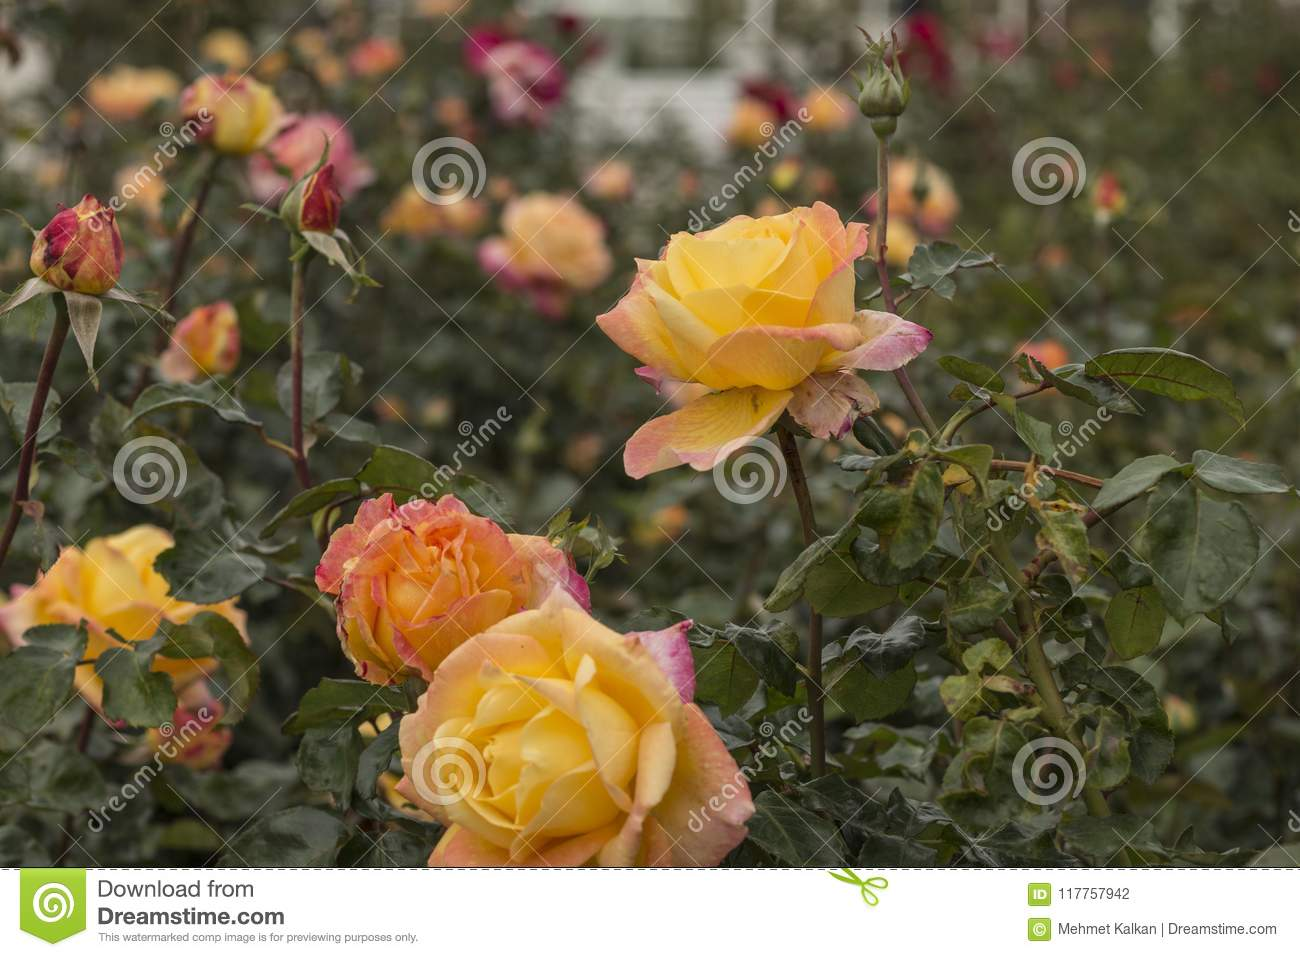 Yellow Rose Gardens stock photo. Image of forest, eden - 117757942